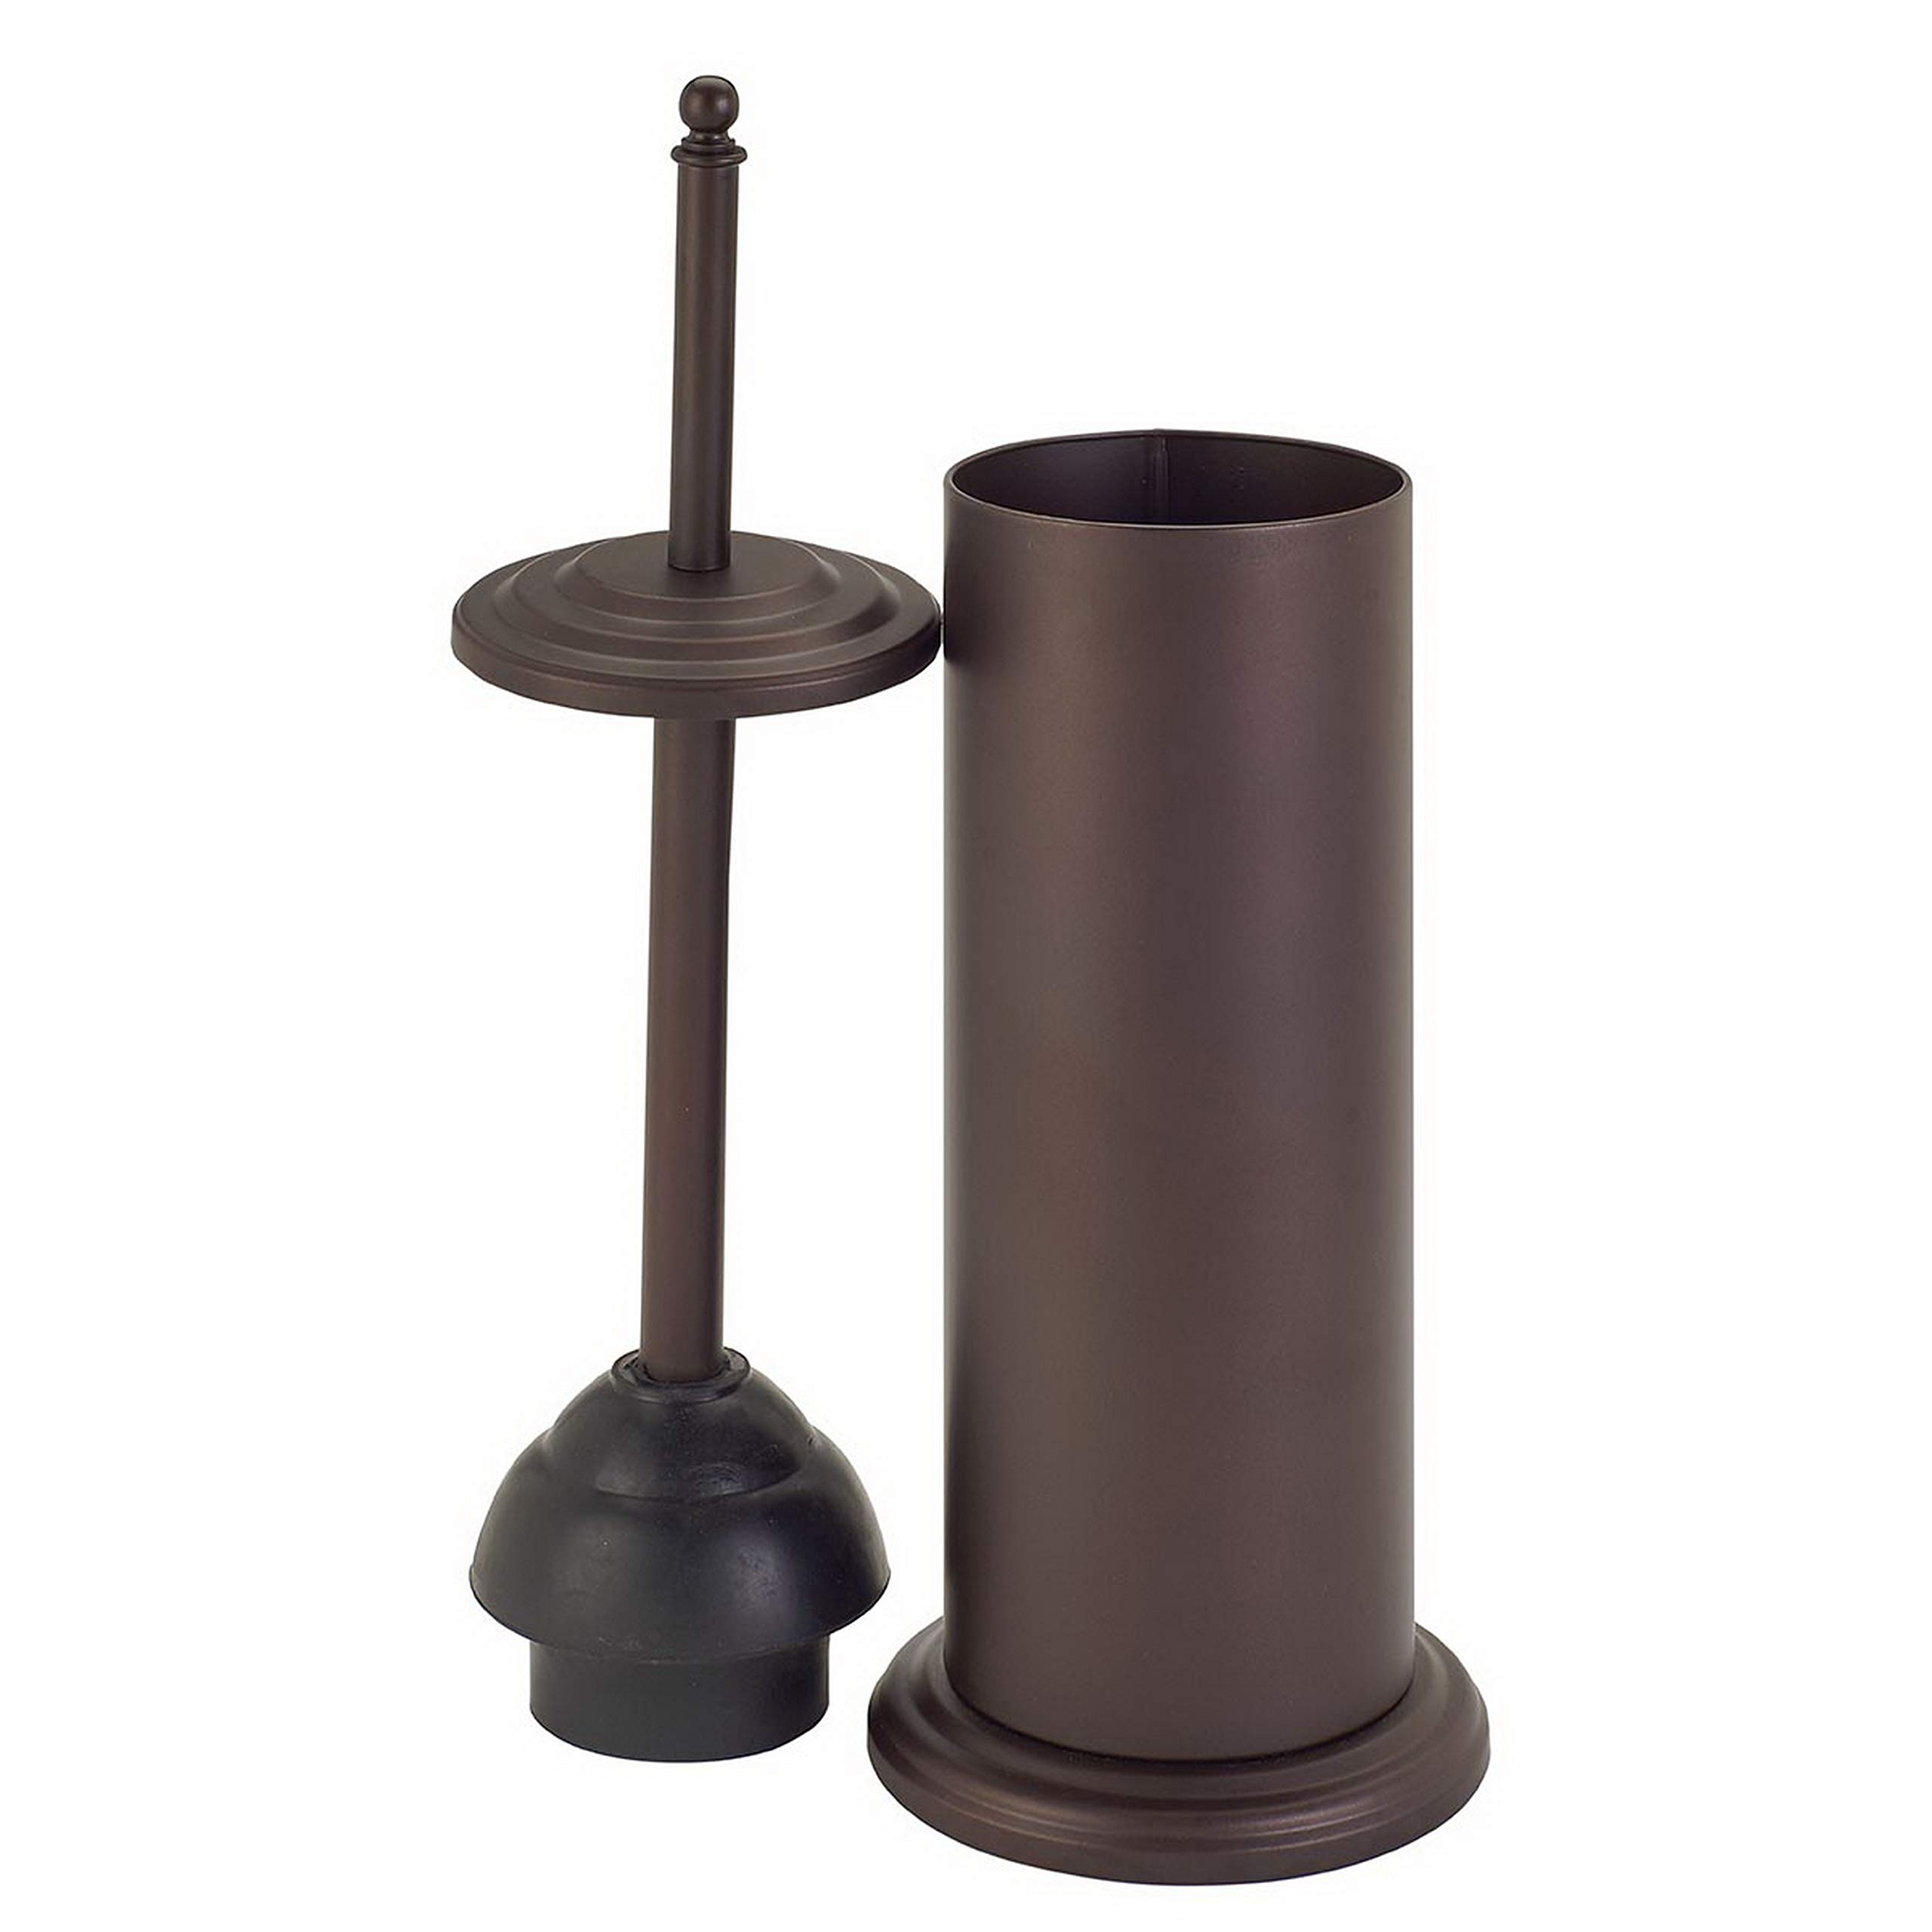 Bath Bliss Cylinder Free Standing Toilet Plunger & Holder, Water & Rust Resistant, Decorative, Bronze by Bath Bliss